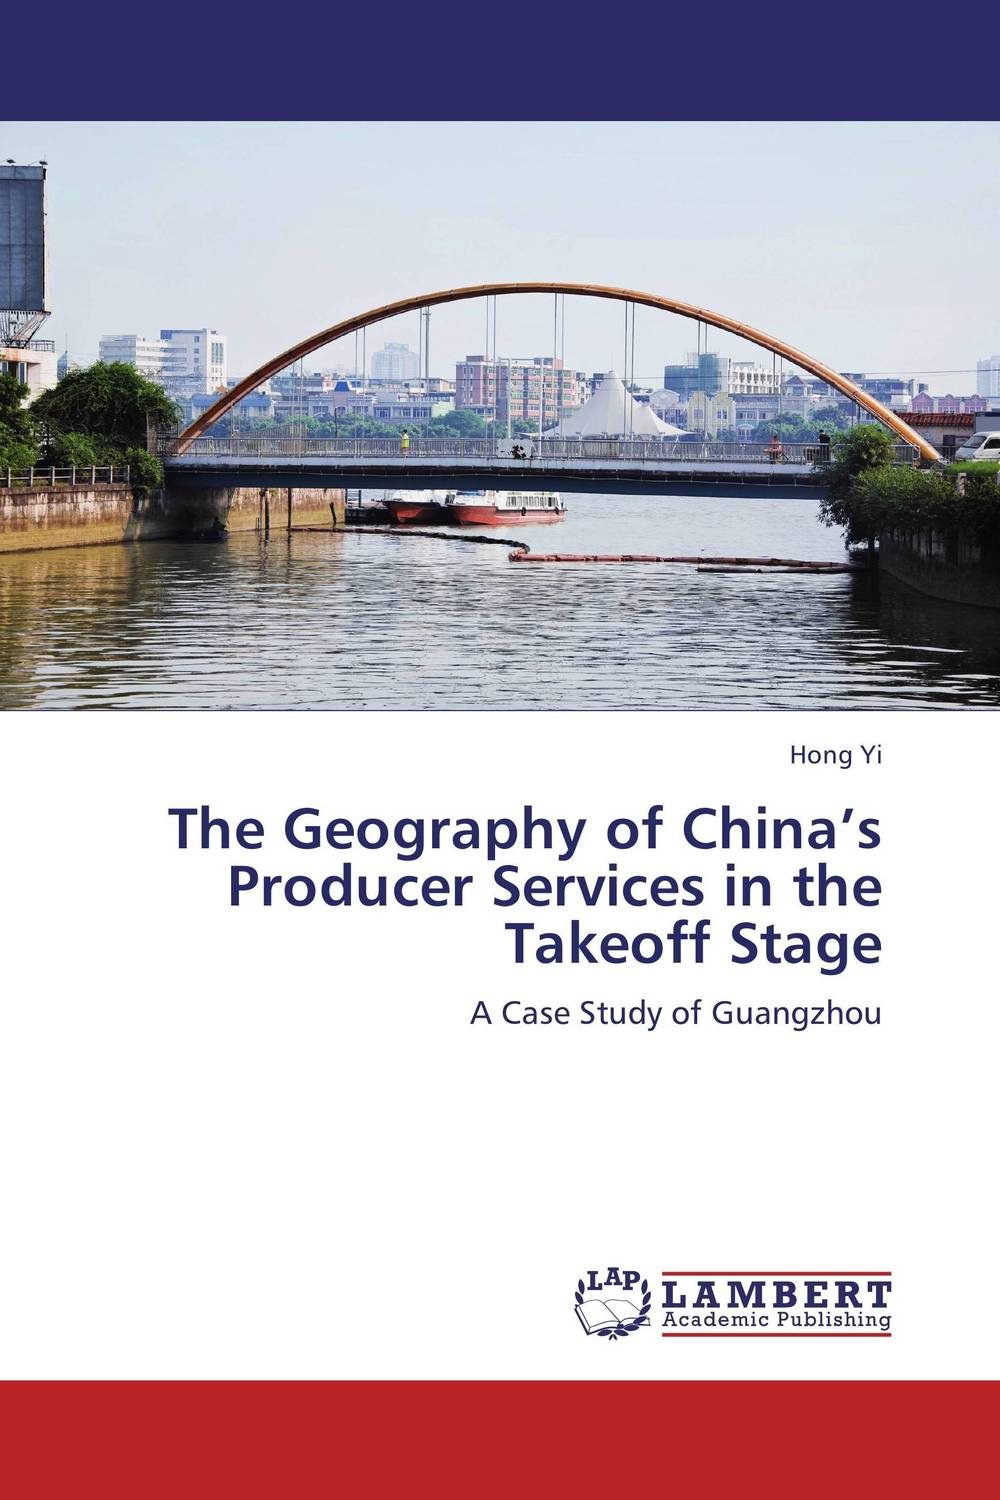 The Geography of China's Producer Services in the Takeoff Stage presidential nominee will address a gathering